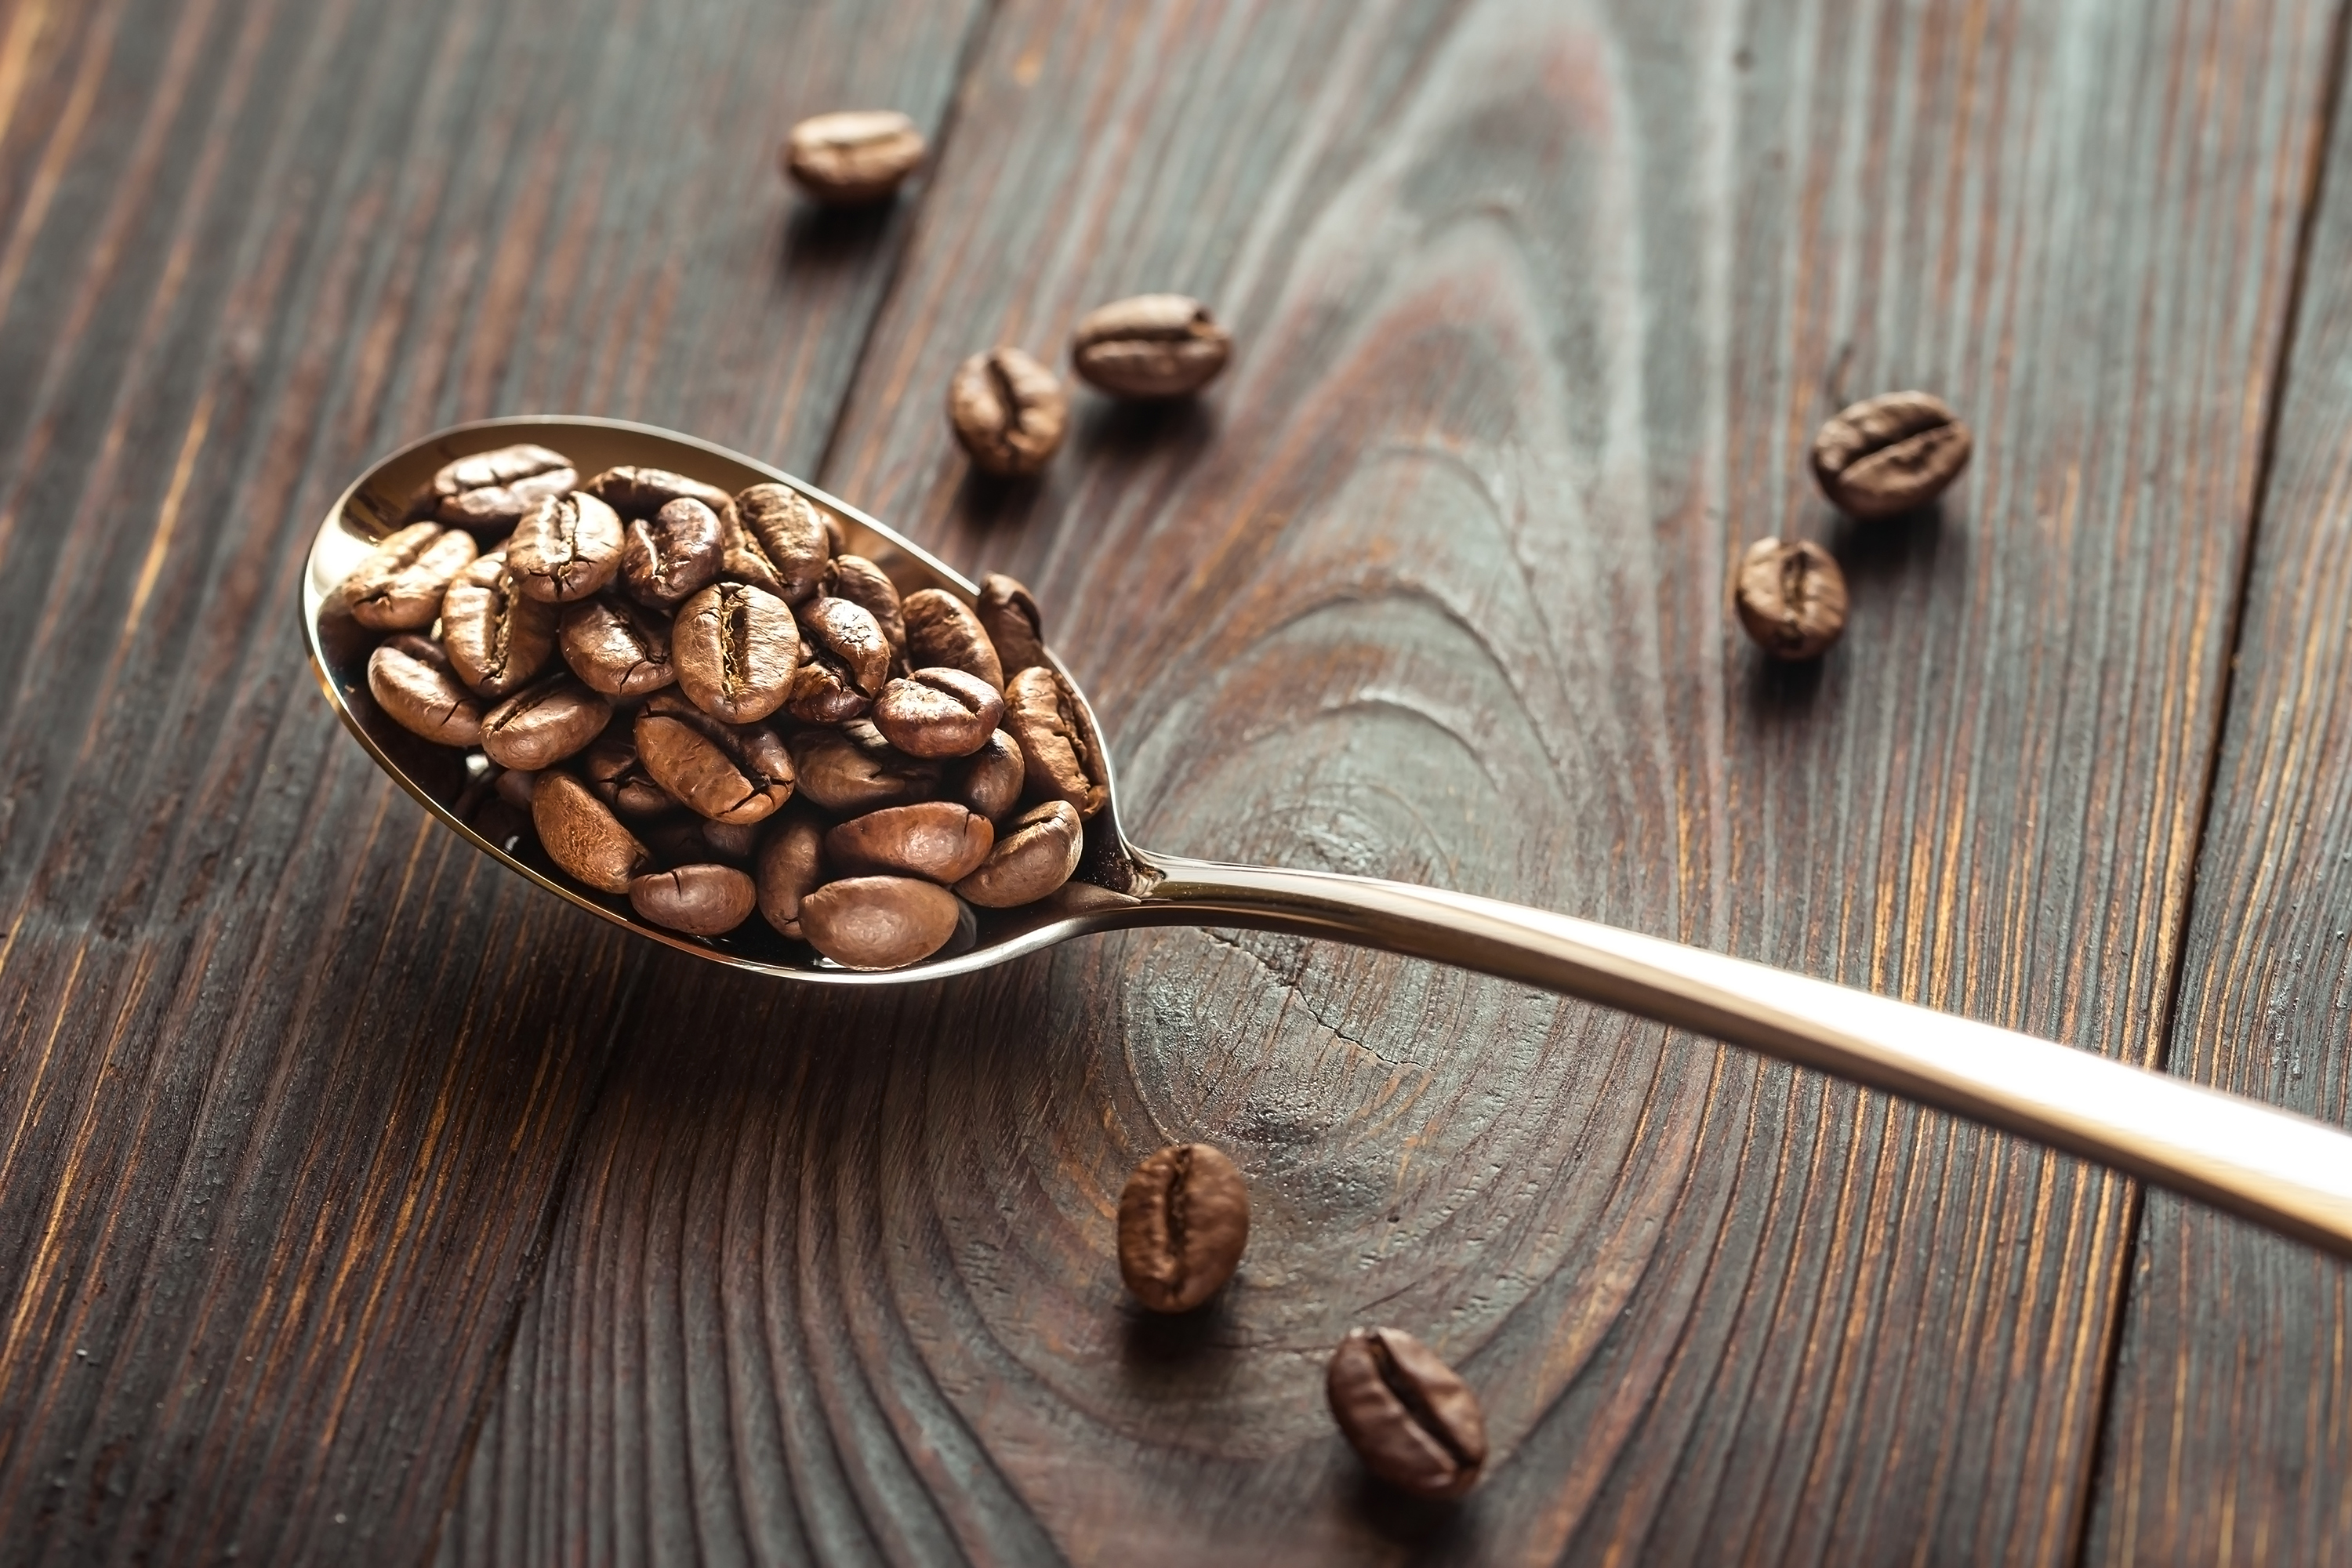 Spoon of coffee beans example image 1